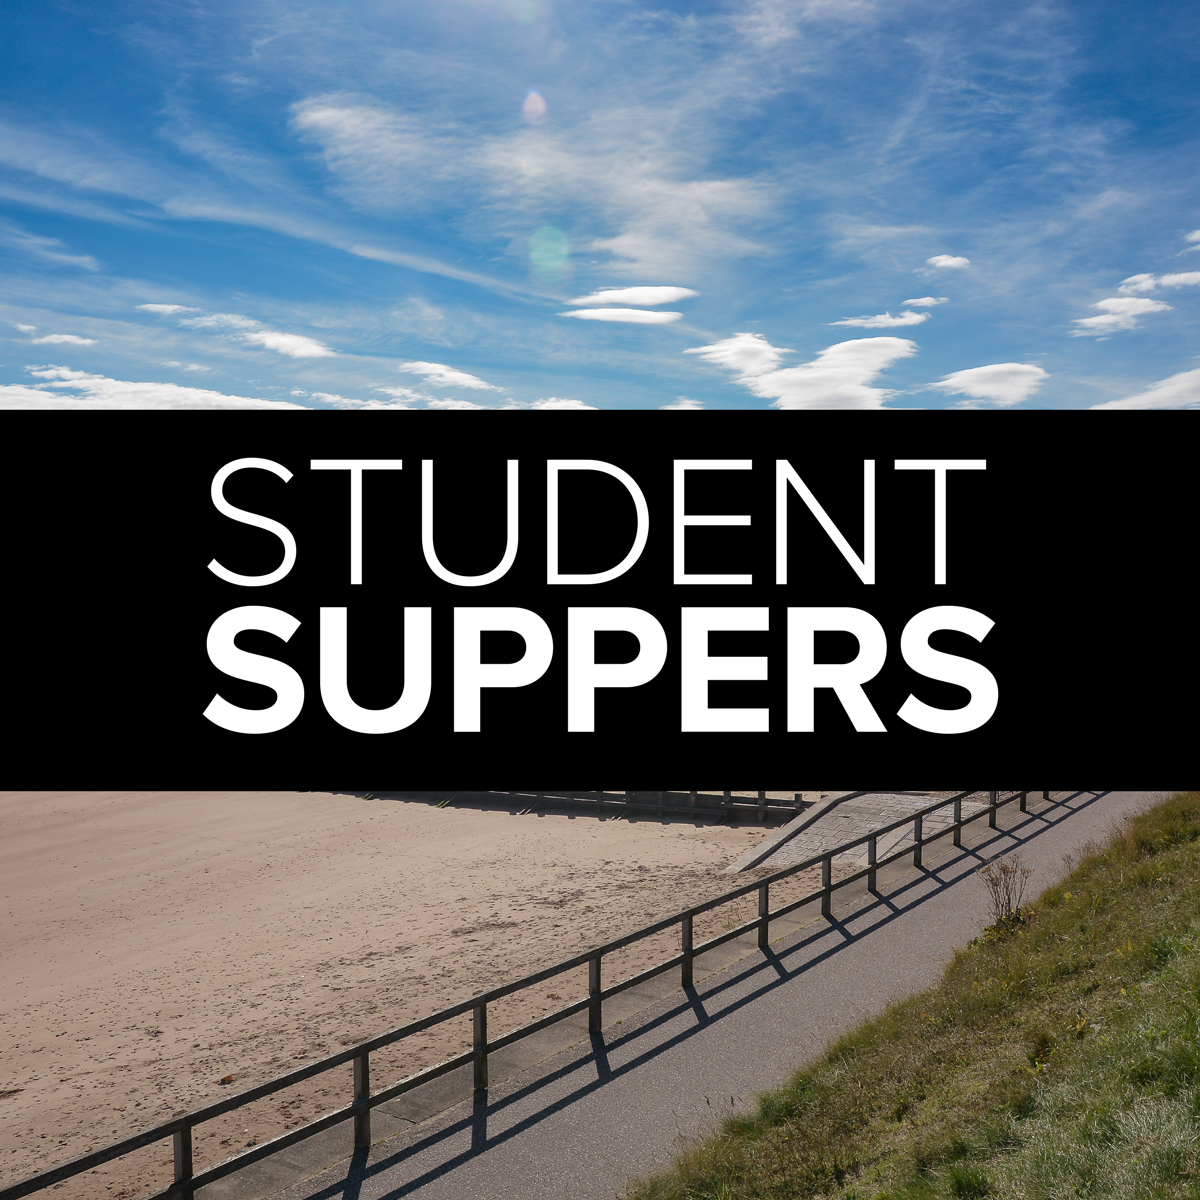 Student Suppers Graphic